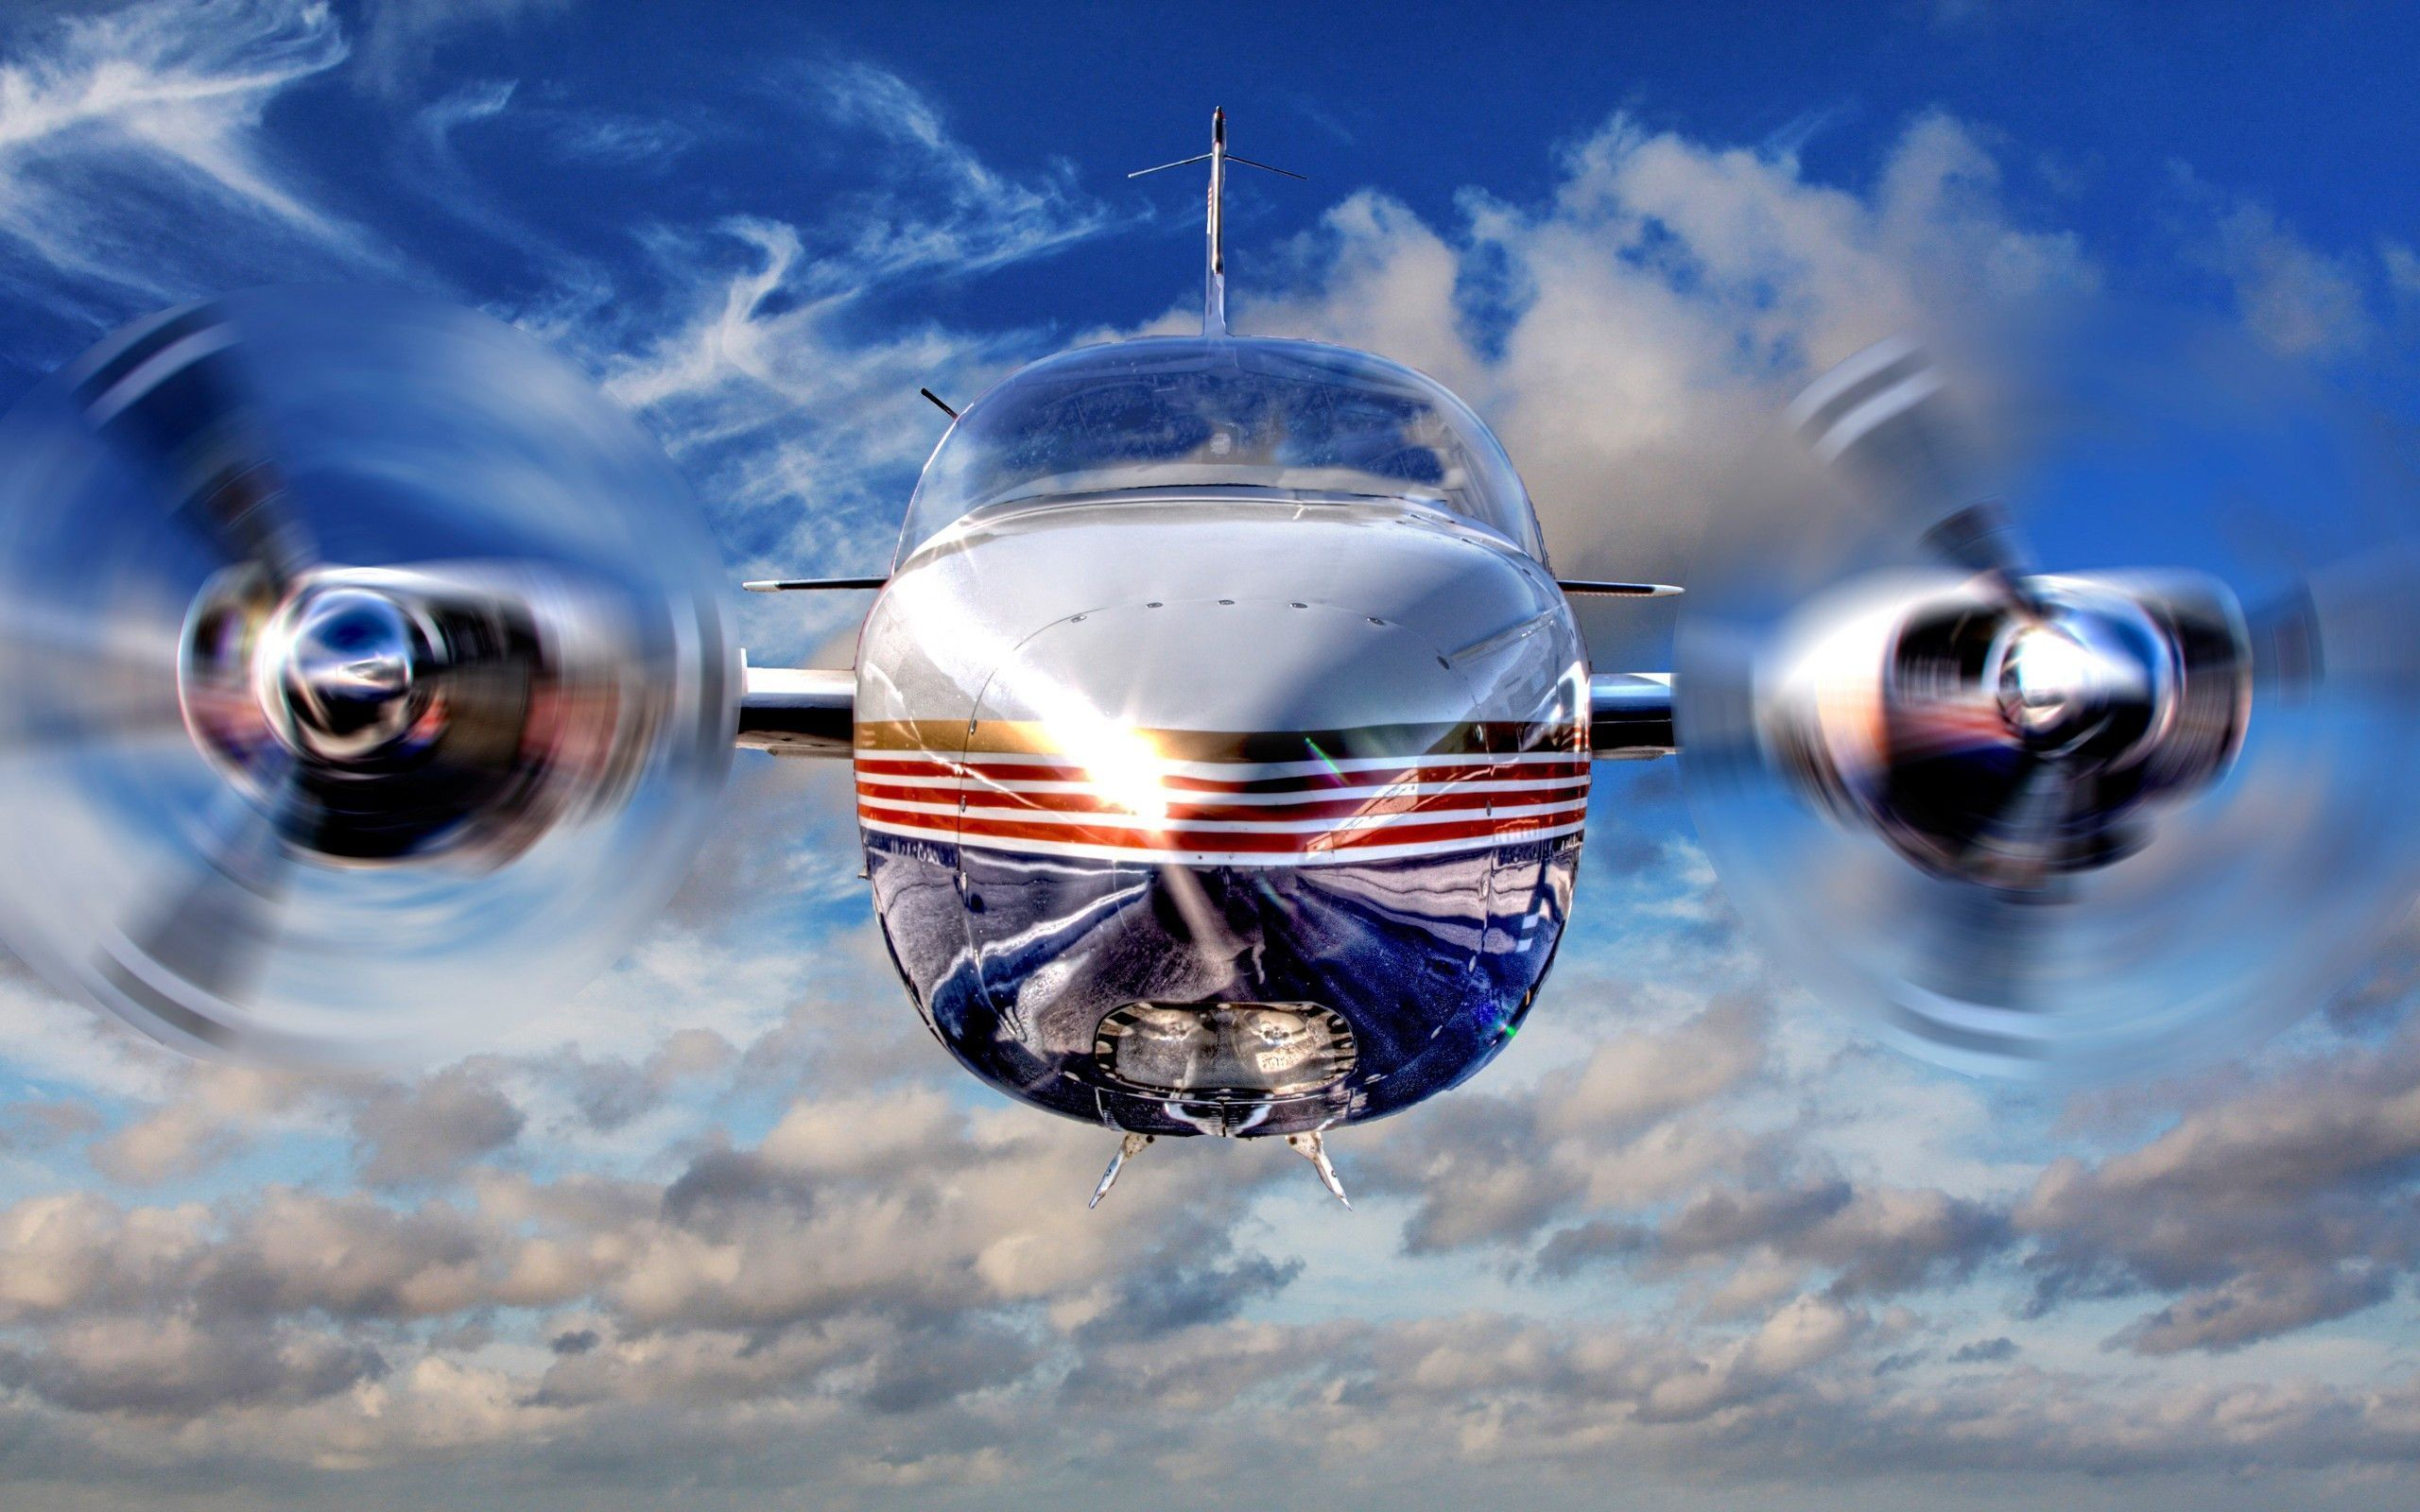 Airplane Wallpapers Full Hd Wallpaper Search Airplane